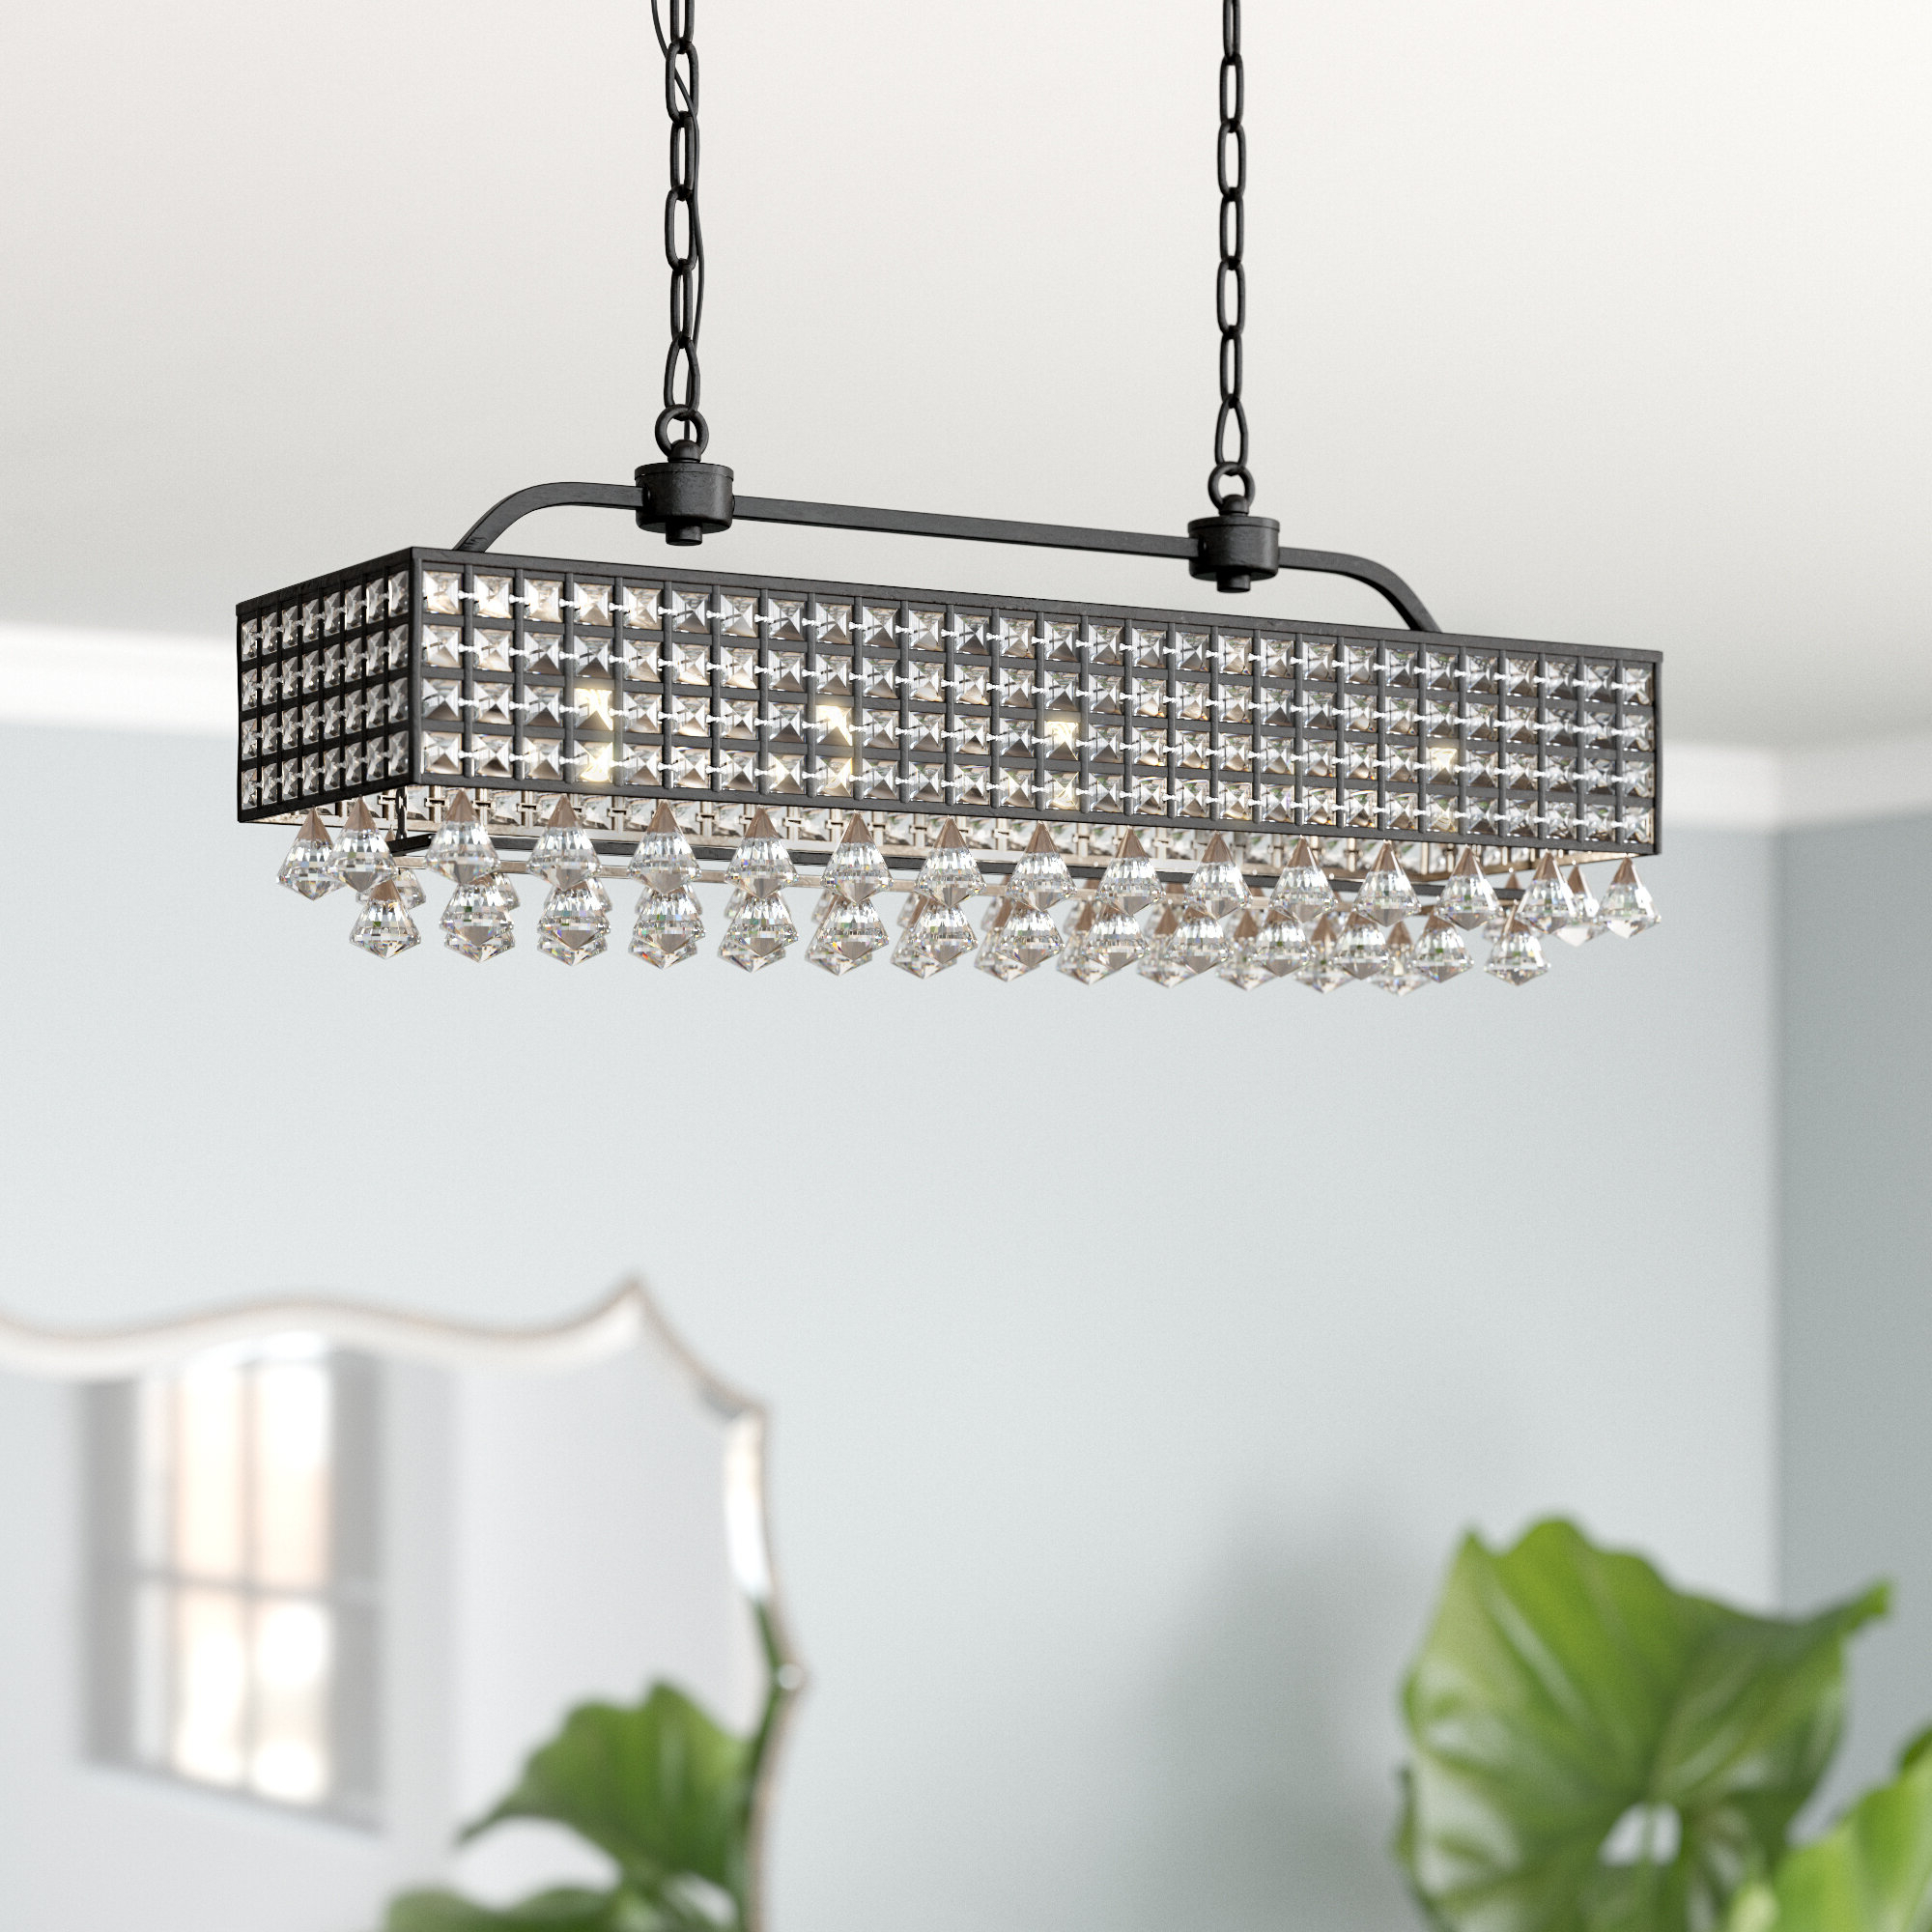 Verdell 5 Light Crystal Chandeliers Within 2019 Madilynn 5 Light Crystal Chandelier (Gallery 3 of 20)